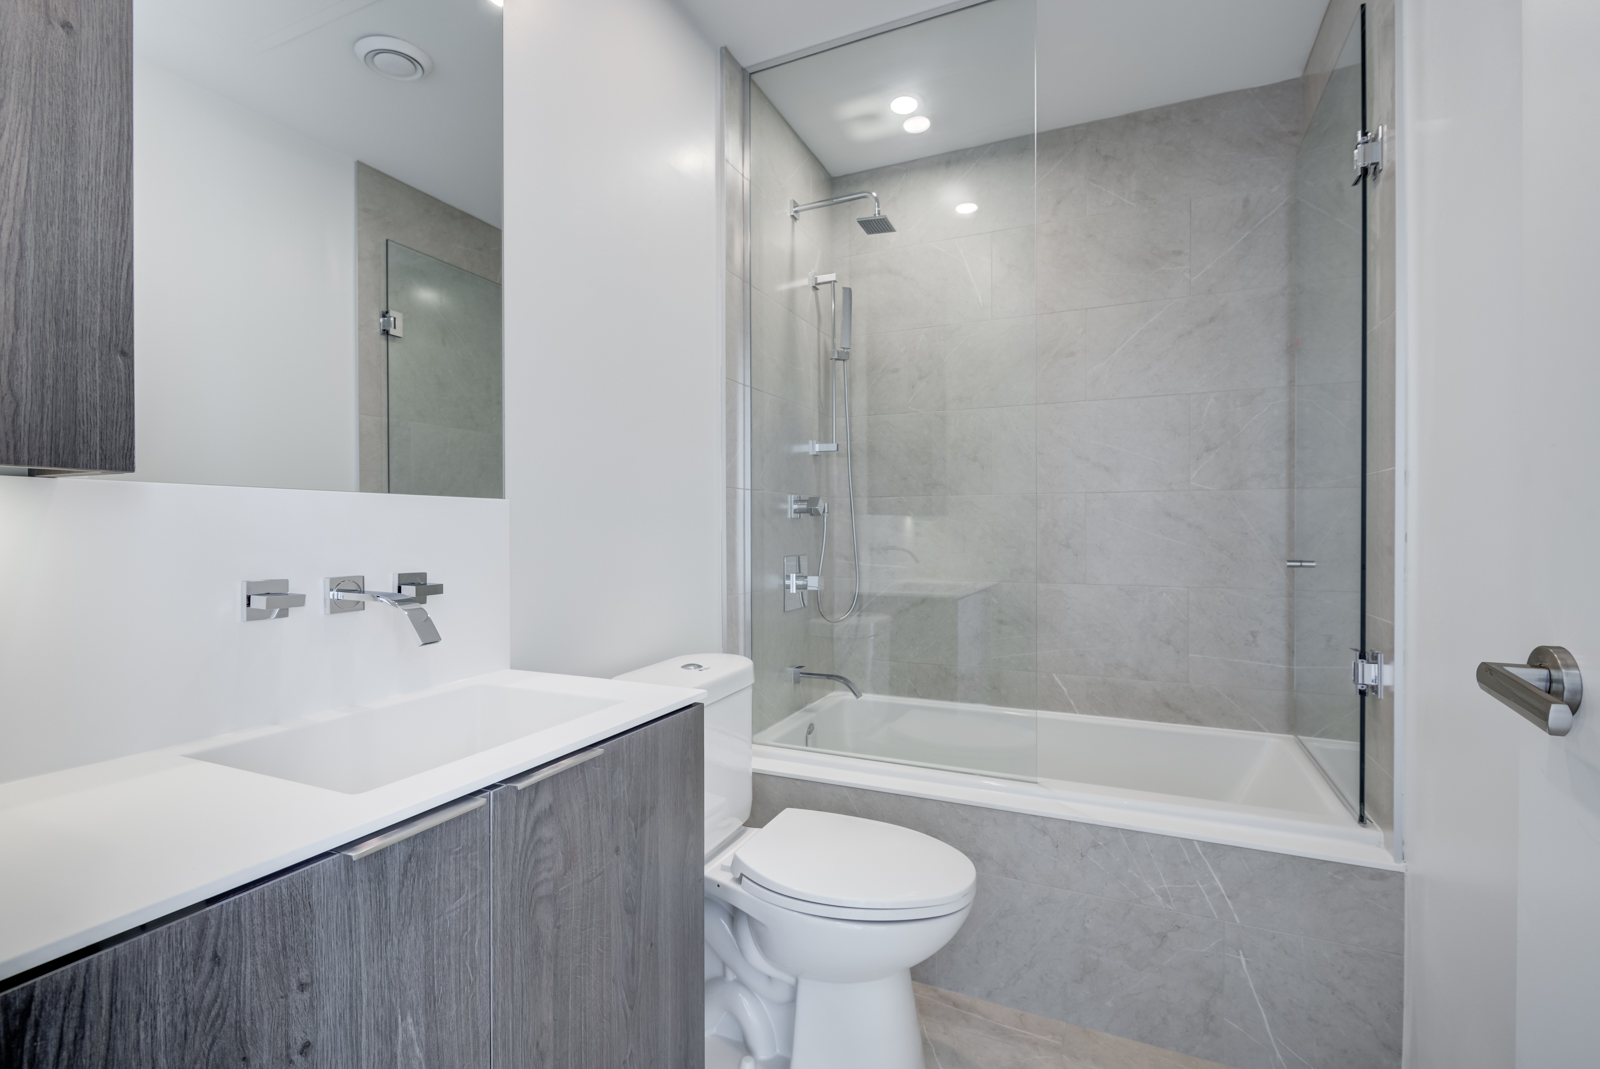 Photo of bathroom and sink, faucet, tub and shower.